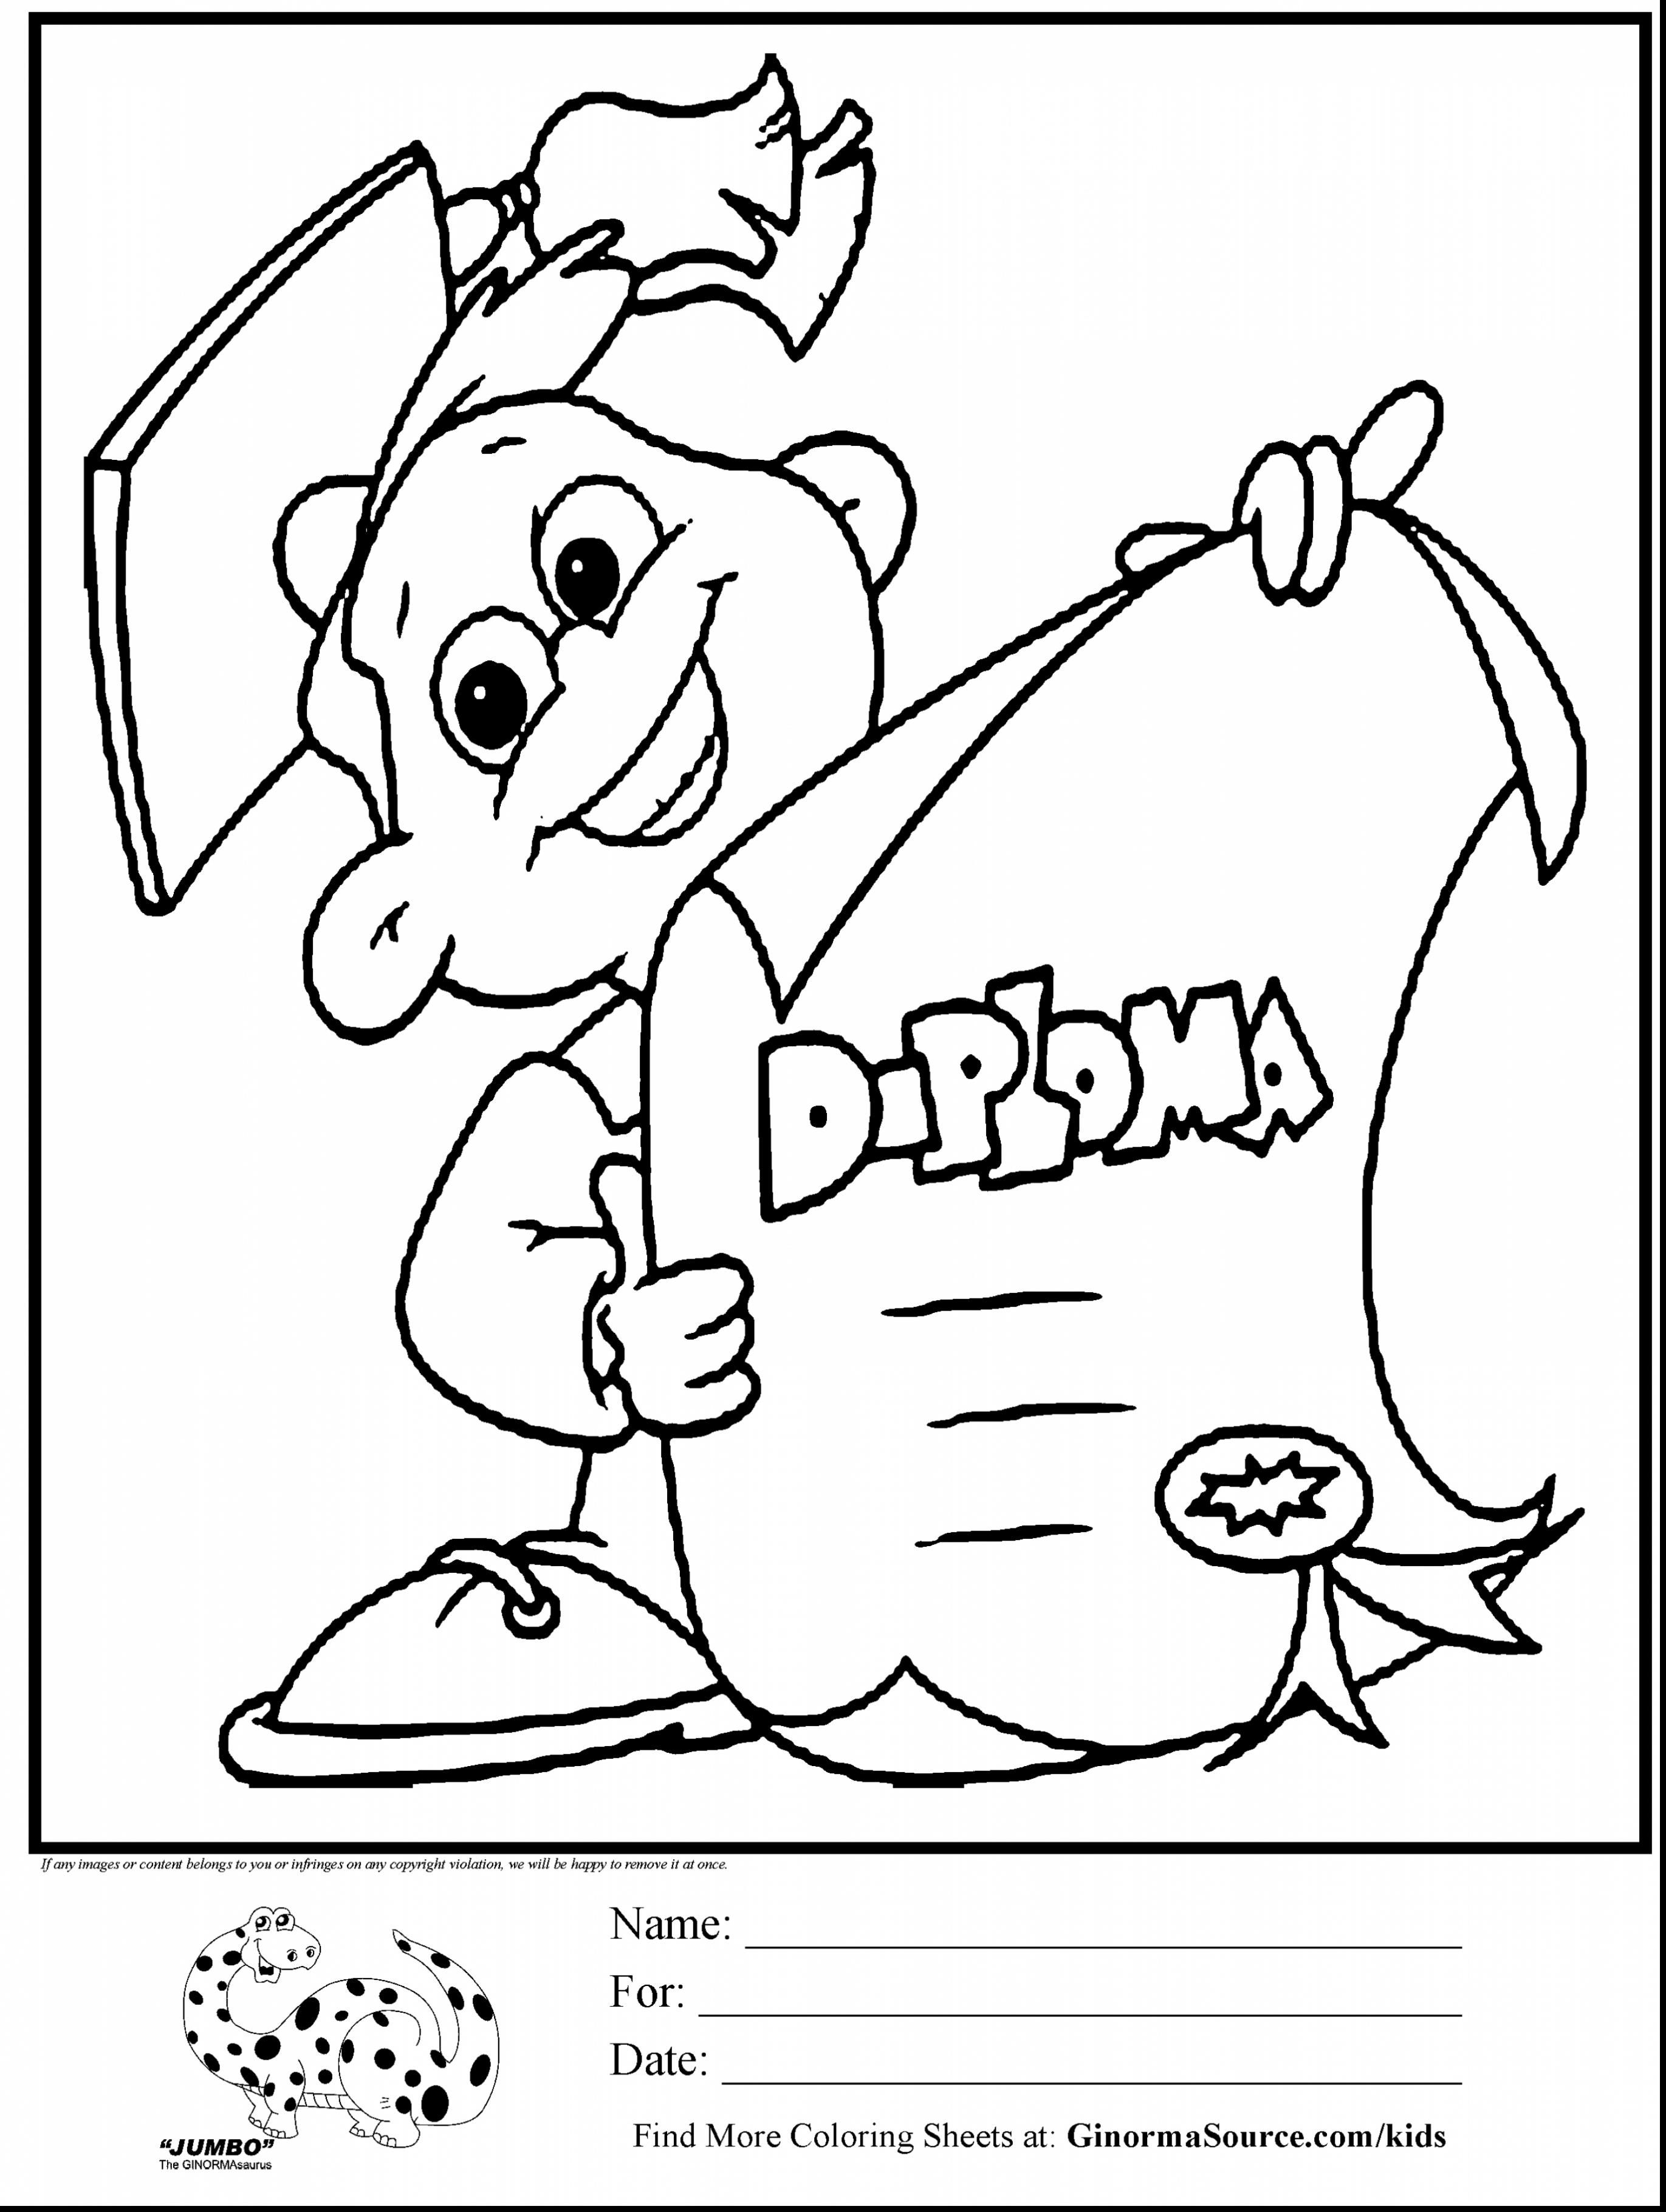 Coloring College Graduation Coloring Page For Preschool Pages On